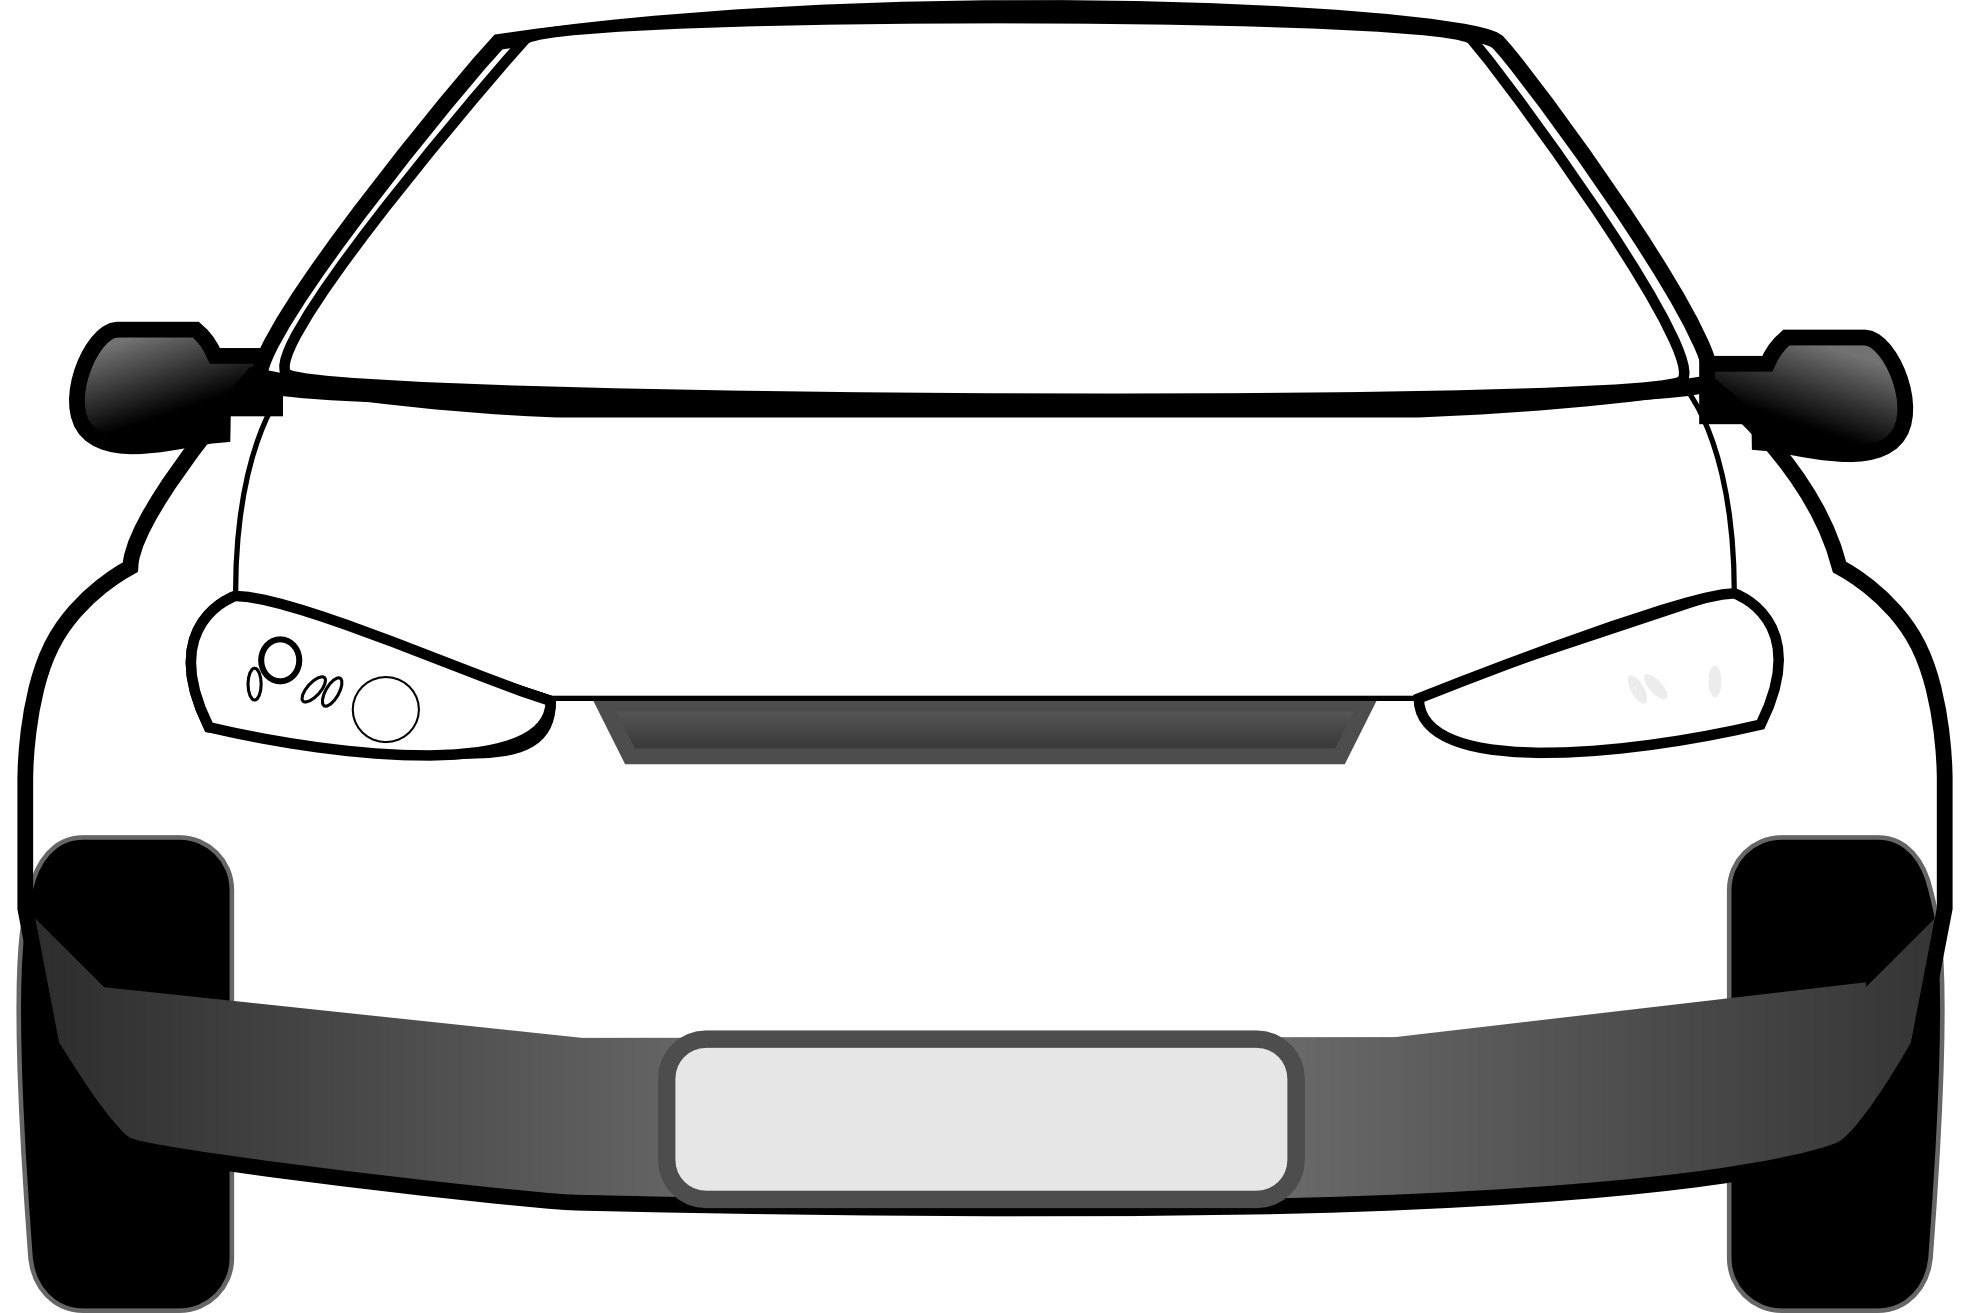 Car clipart machine. Front view rudycoby net